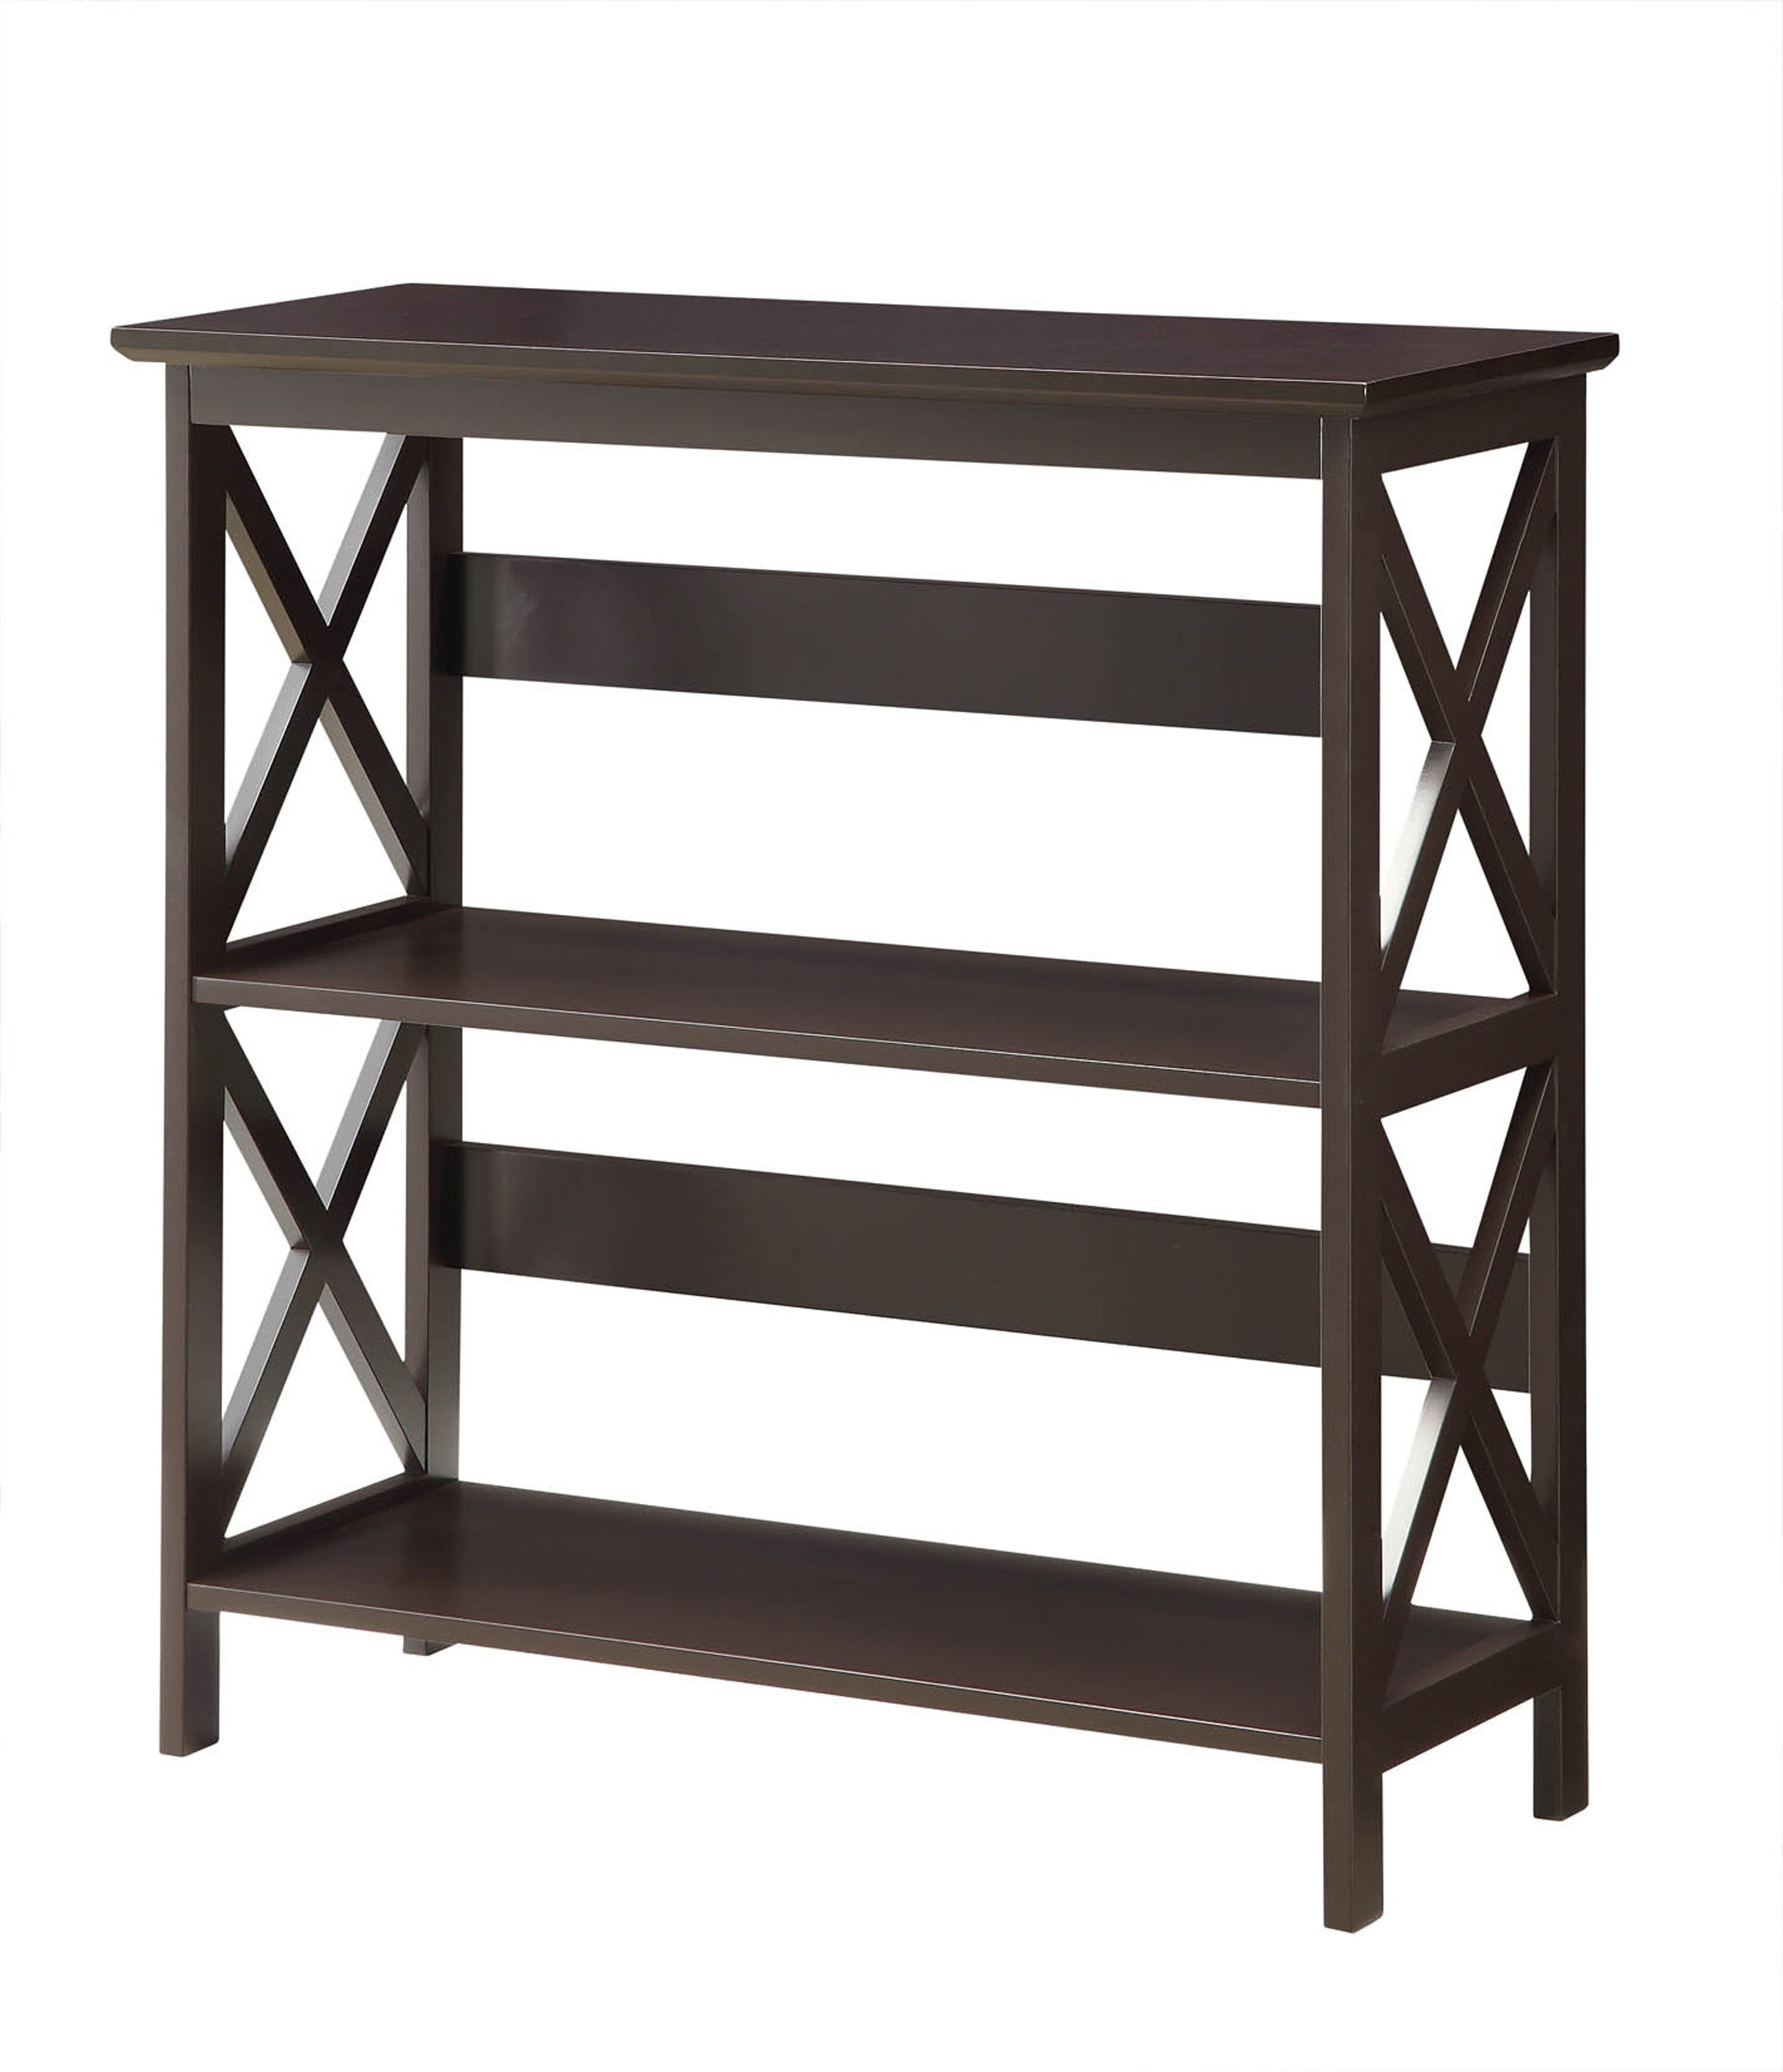 Preferred Kettner Etagere Bookcases Inside Stoneford Etagere Bookcase (View 16 of 20)